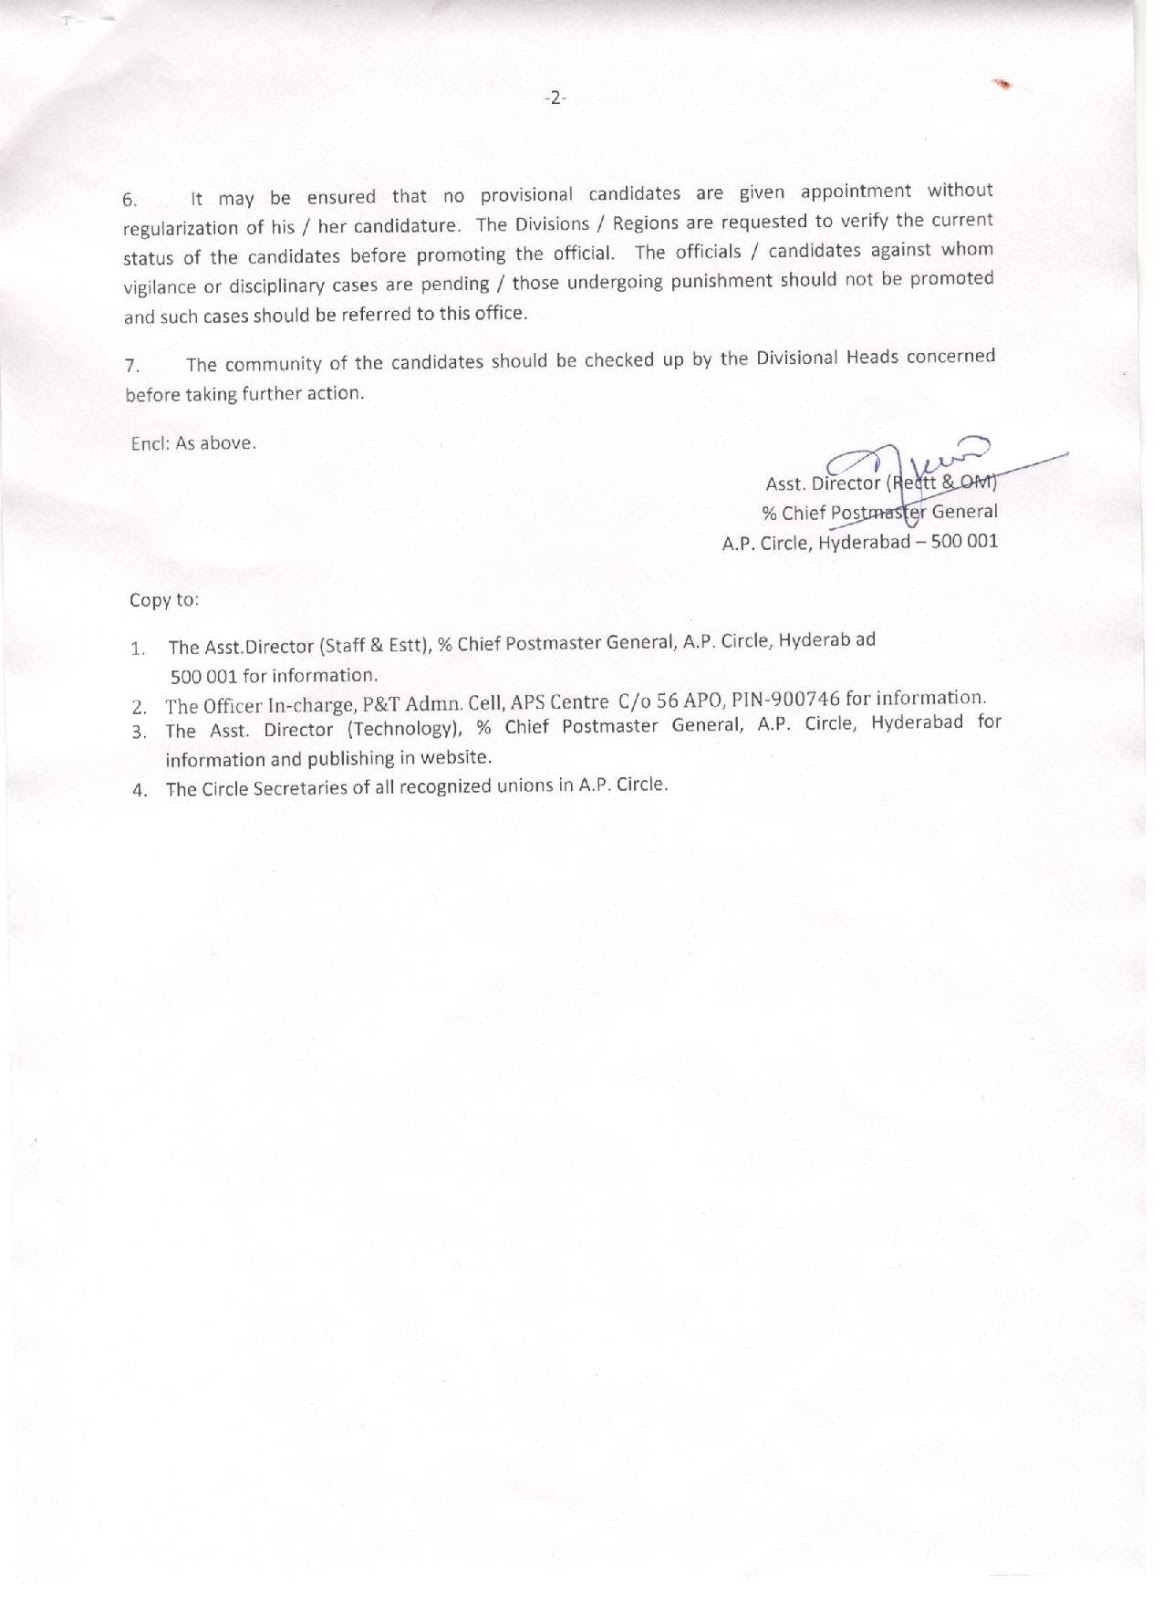 Anantapur Division September 2016 Posted By Srihari Rao On Thursday January 6 2011 5comments Click Here To View The Co Order Dated 12092016